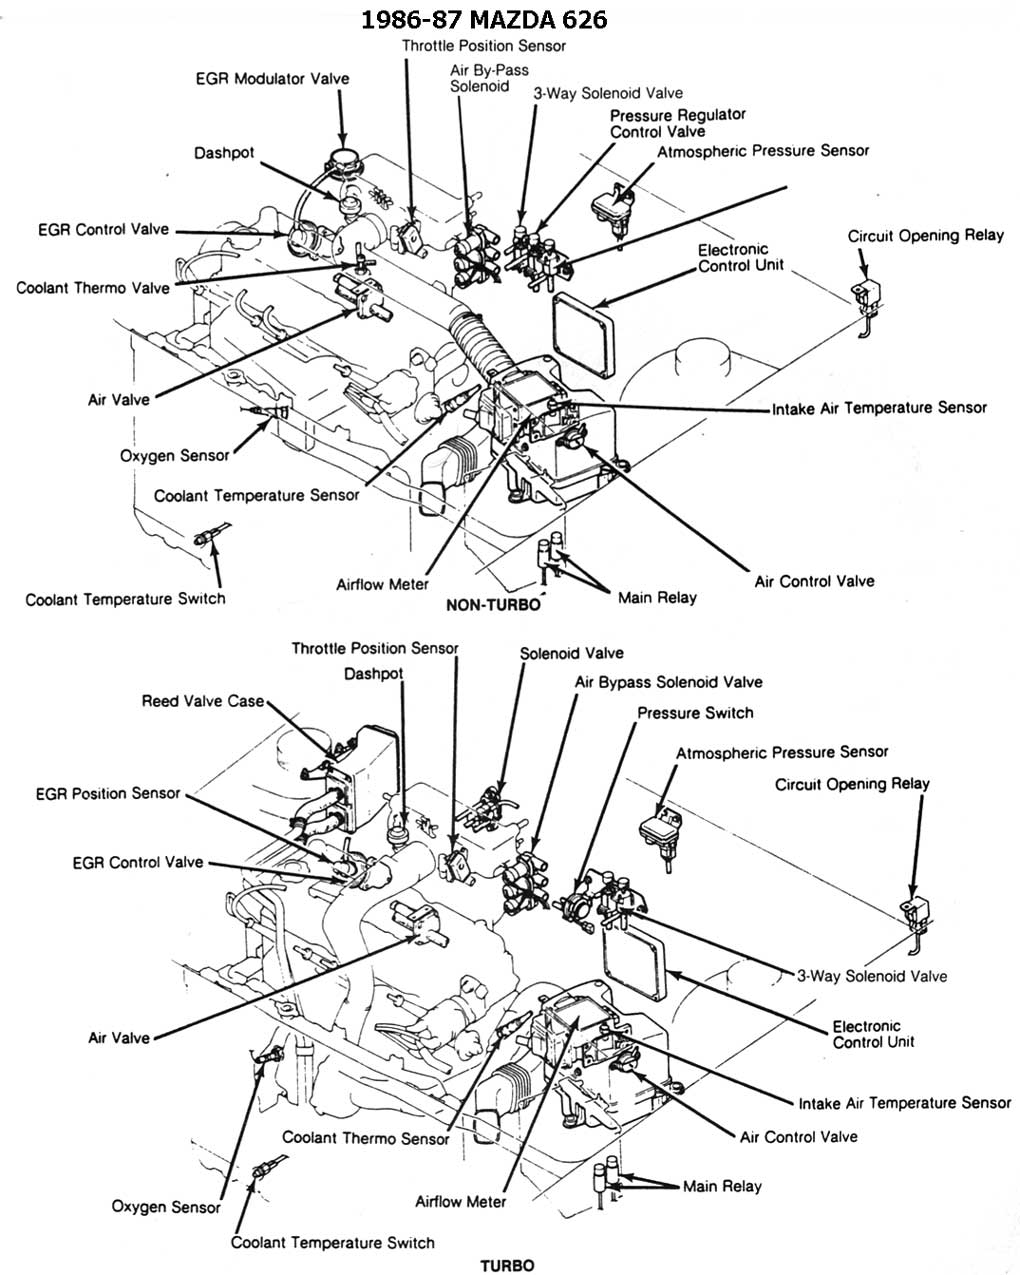 P 0996b43f80cb0f6e as well Mercury Grand Marquis Wiring Diagram likewise Volvo Penta Cooling System Diagram further 9347MAZ10 in addition Wiring Diagram For Chevy S10. on 1989 mazda protege